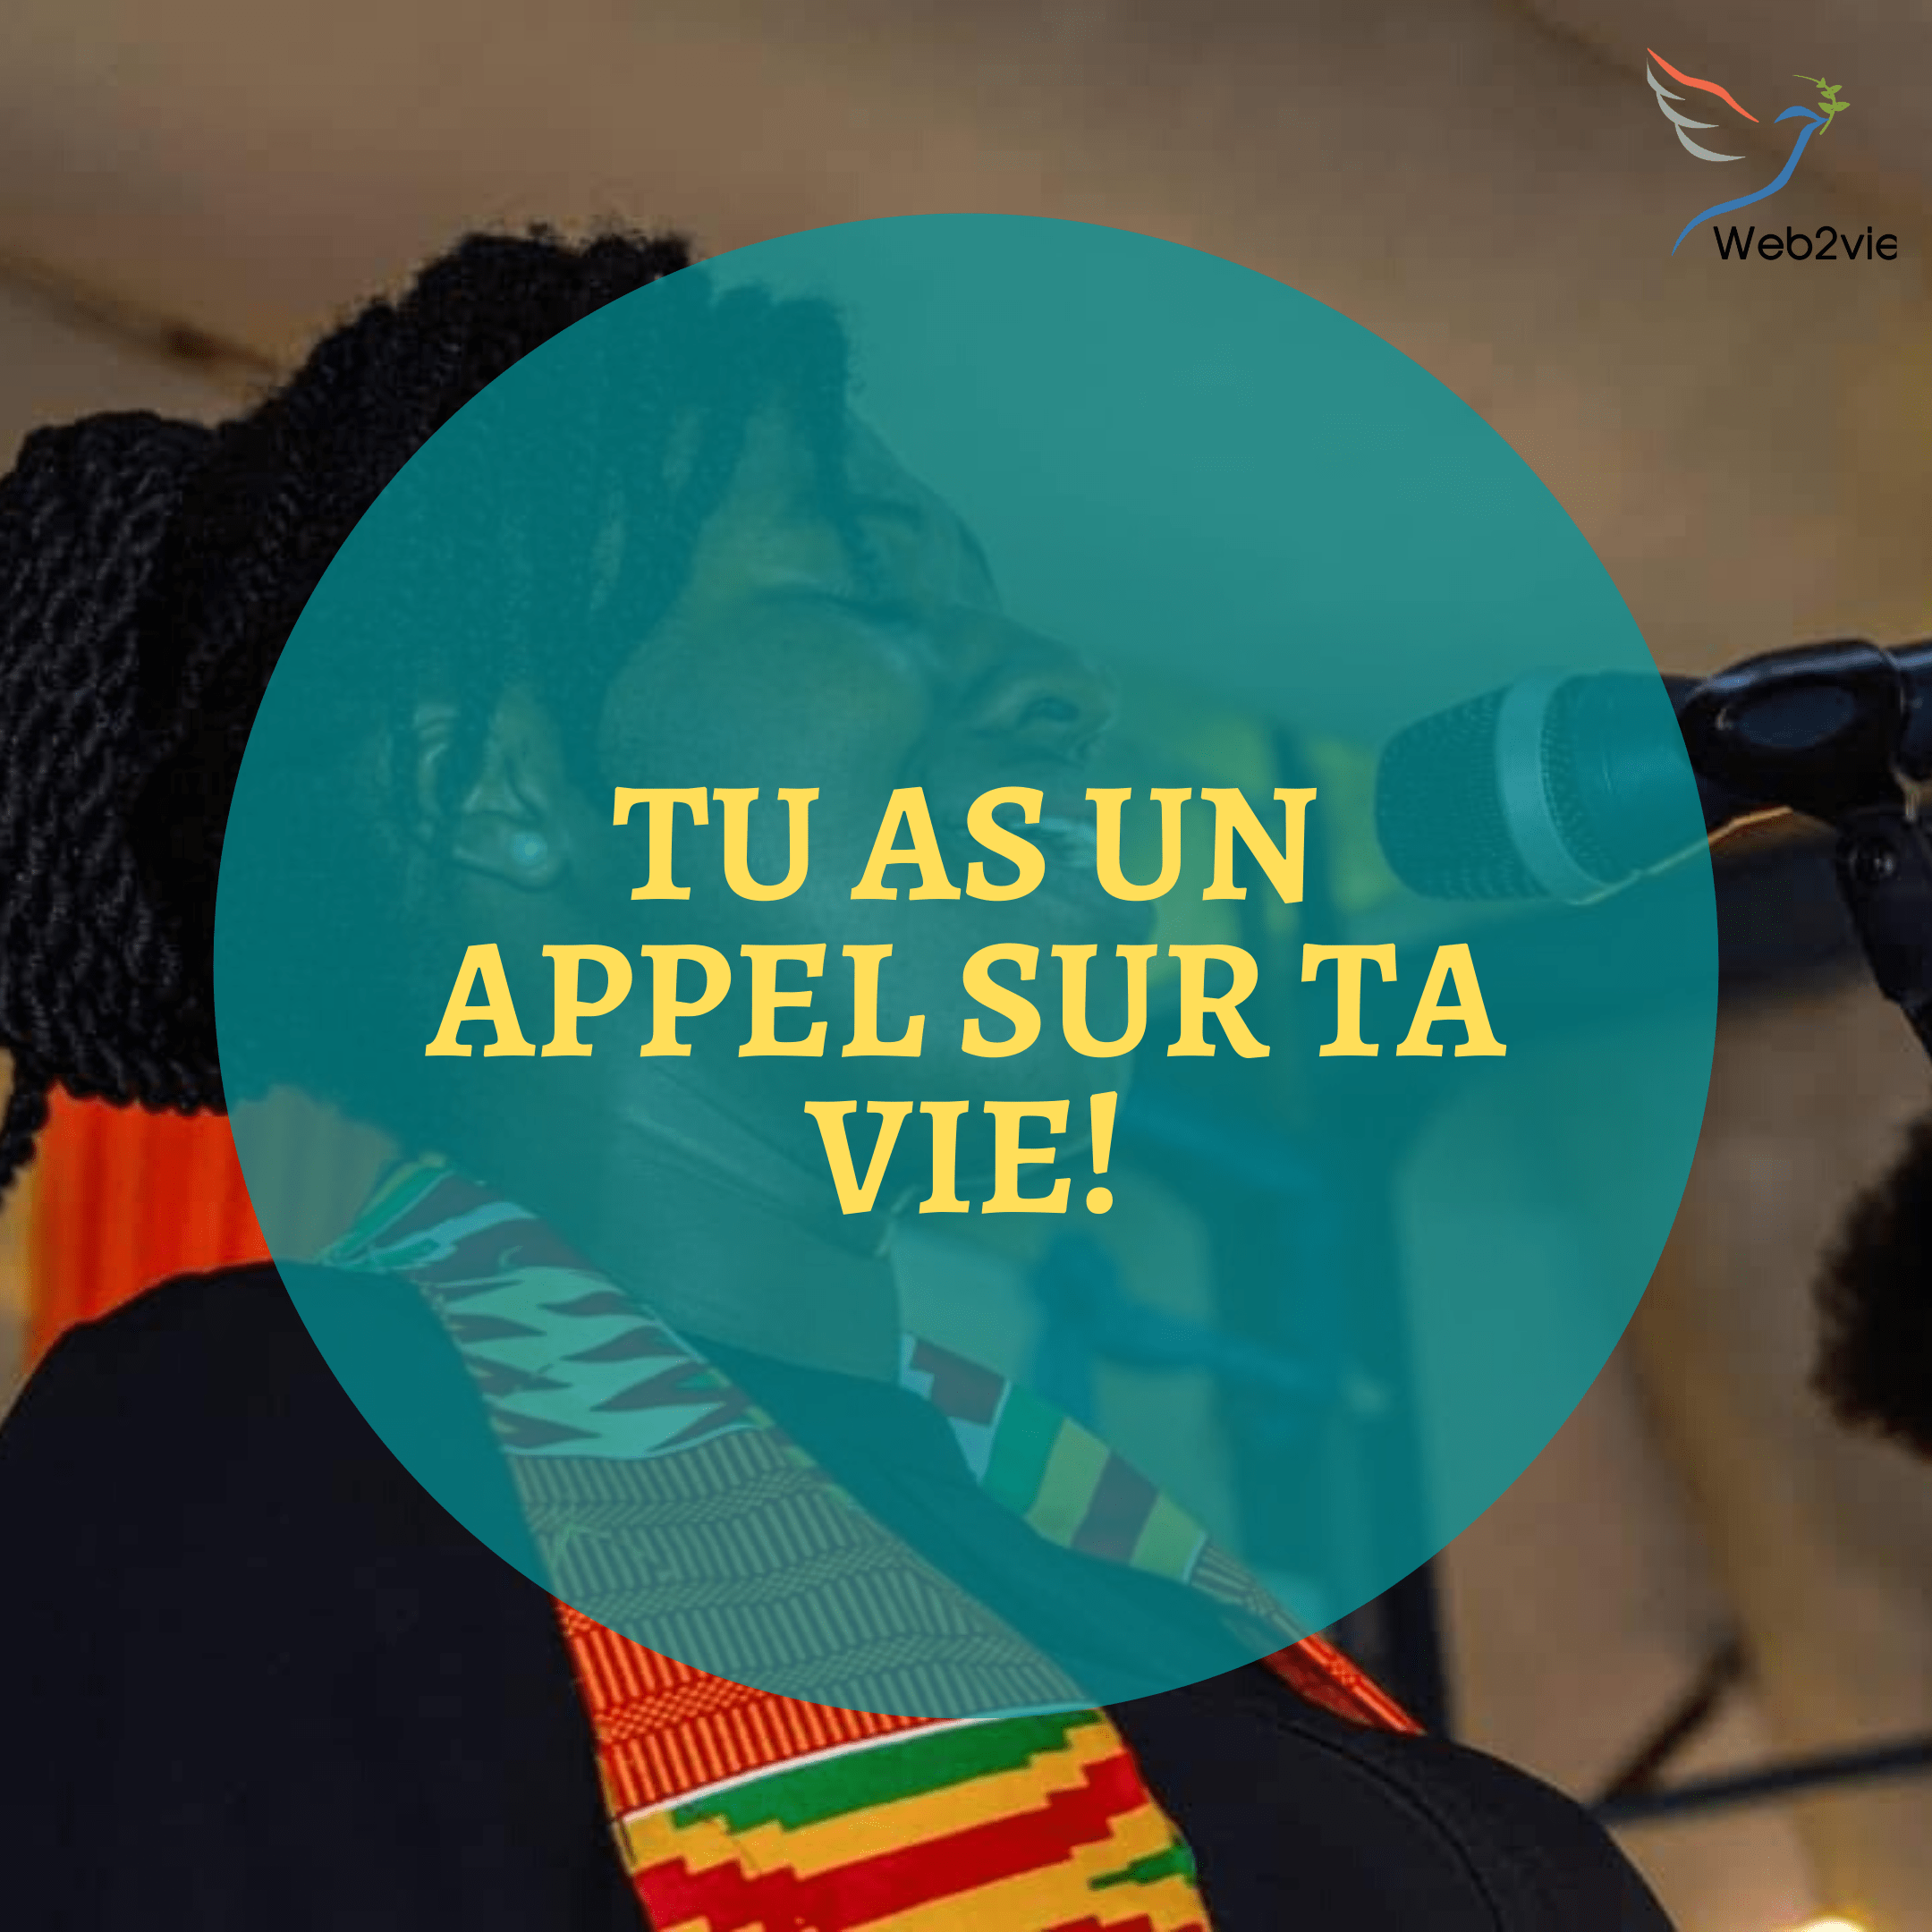 Tu as un appel sur ta vie!